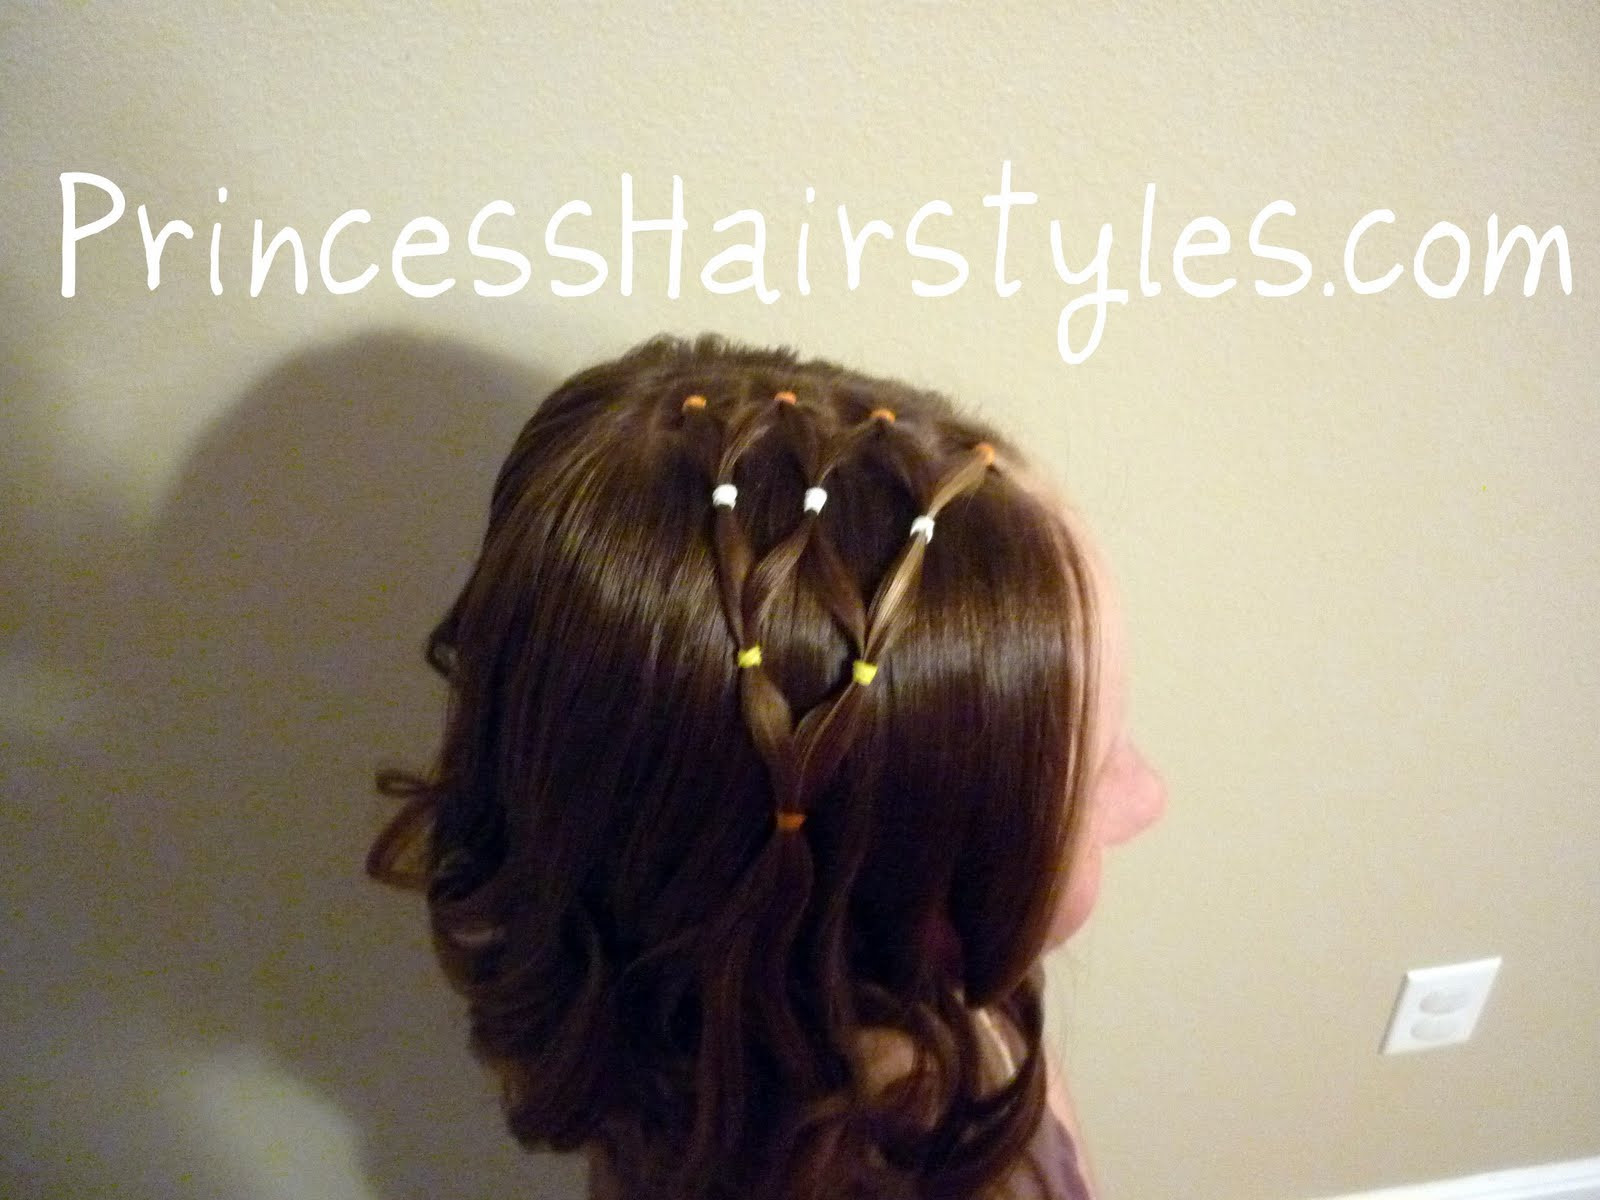 Best ideas about Cute Halloween Hairstyles . Save or Pin Candy Corn Hairstyle Hairstyles For Girls Princess Now.